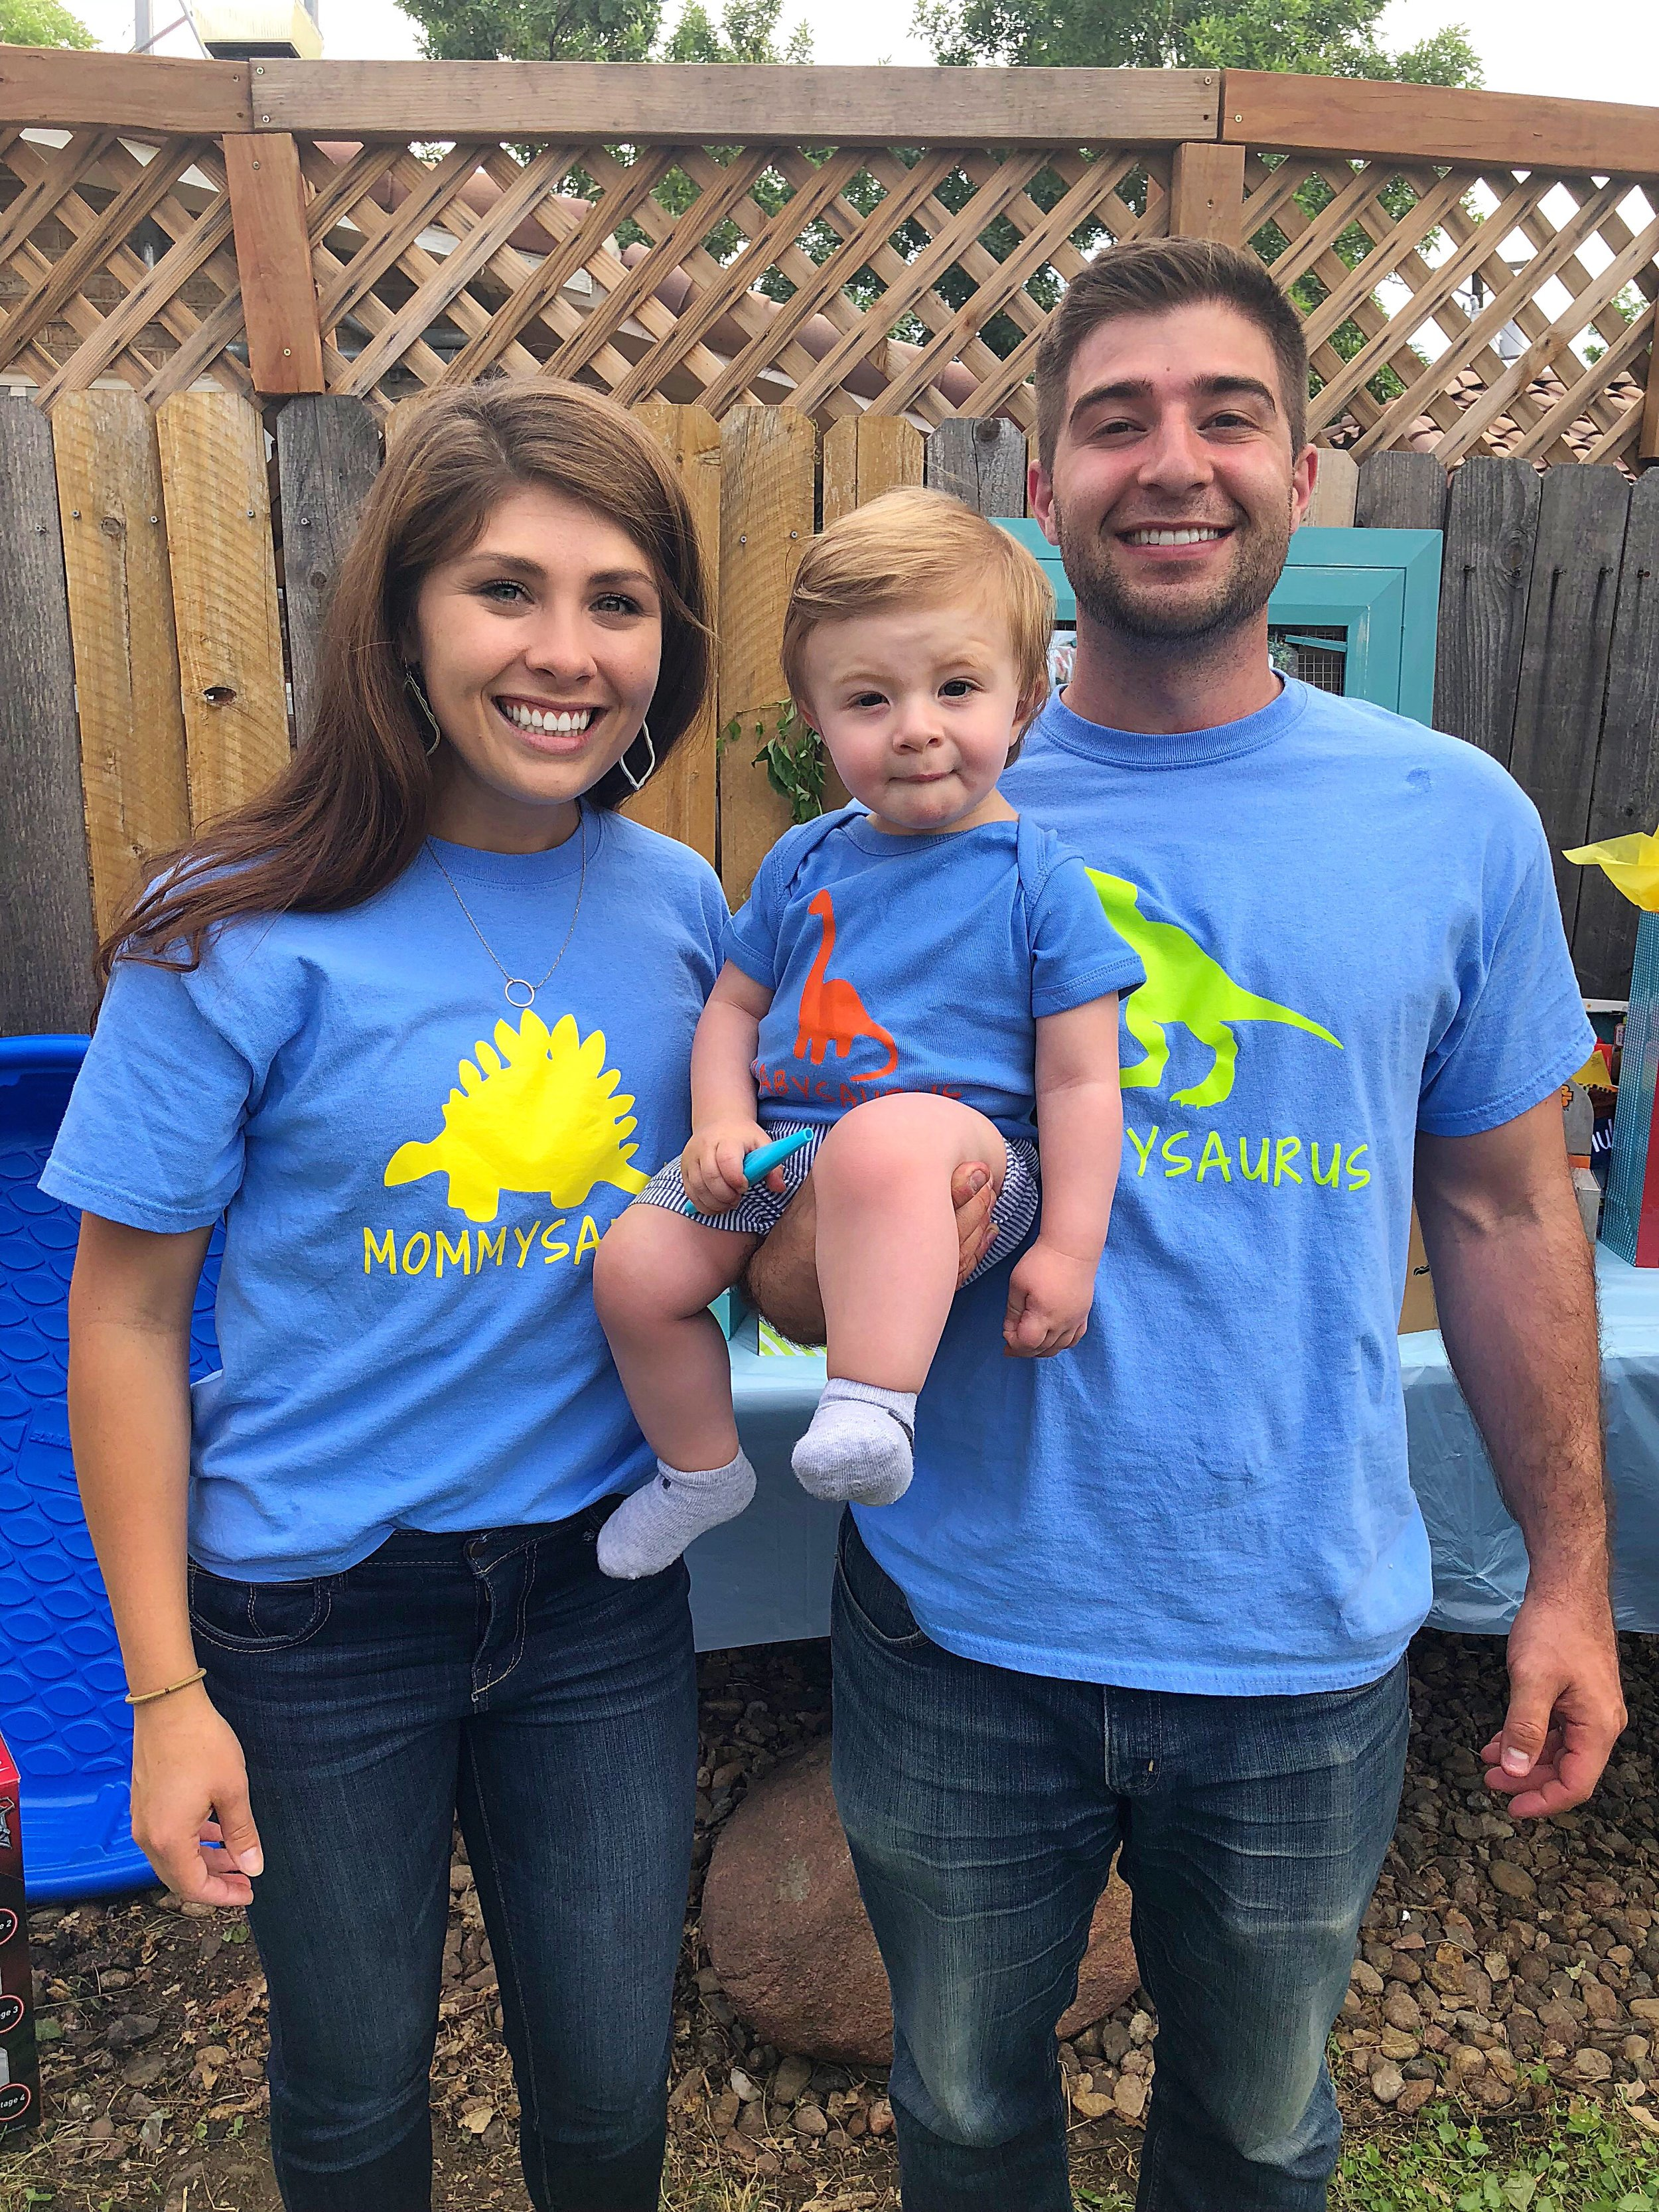 mommysaurous-daddysaurous-babysaurous-tee-shirts